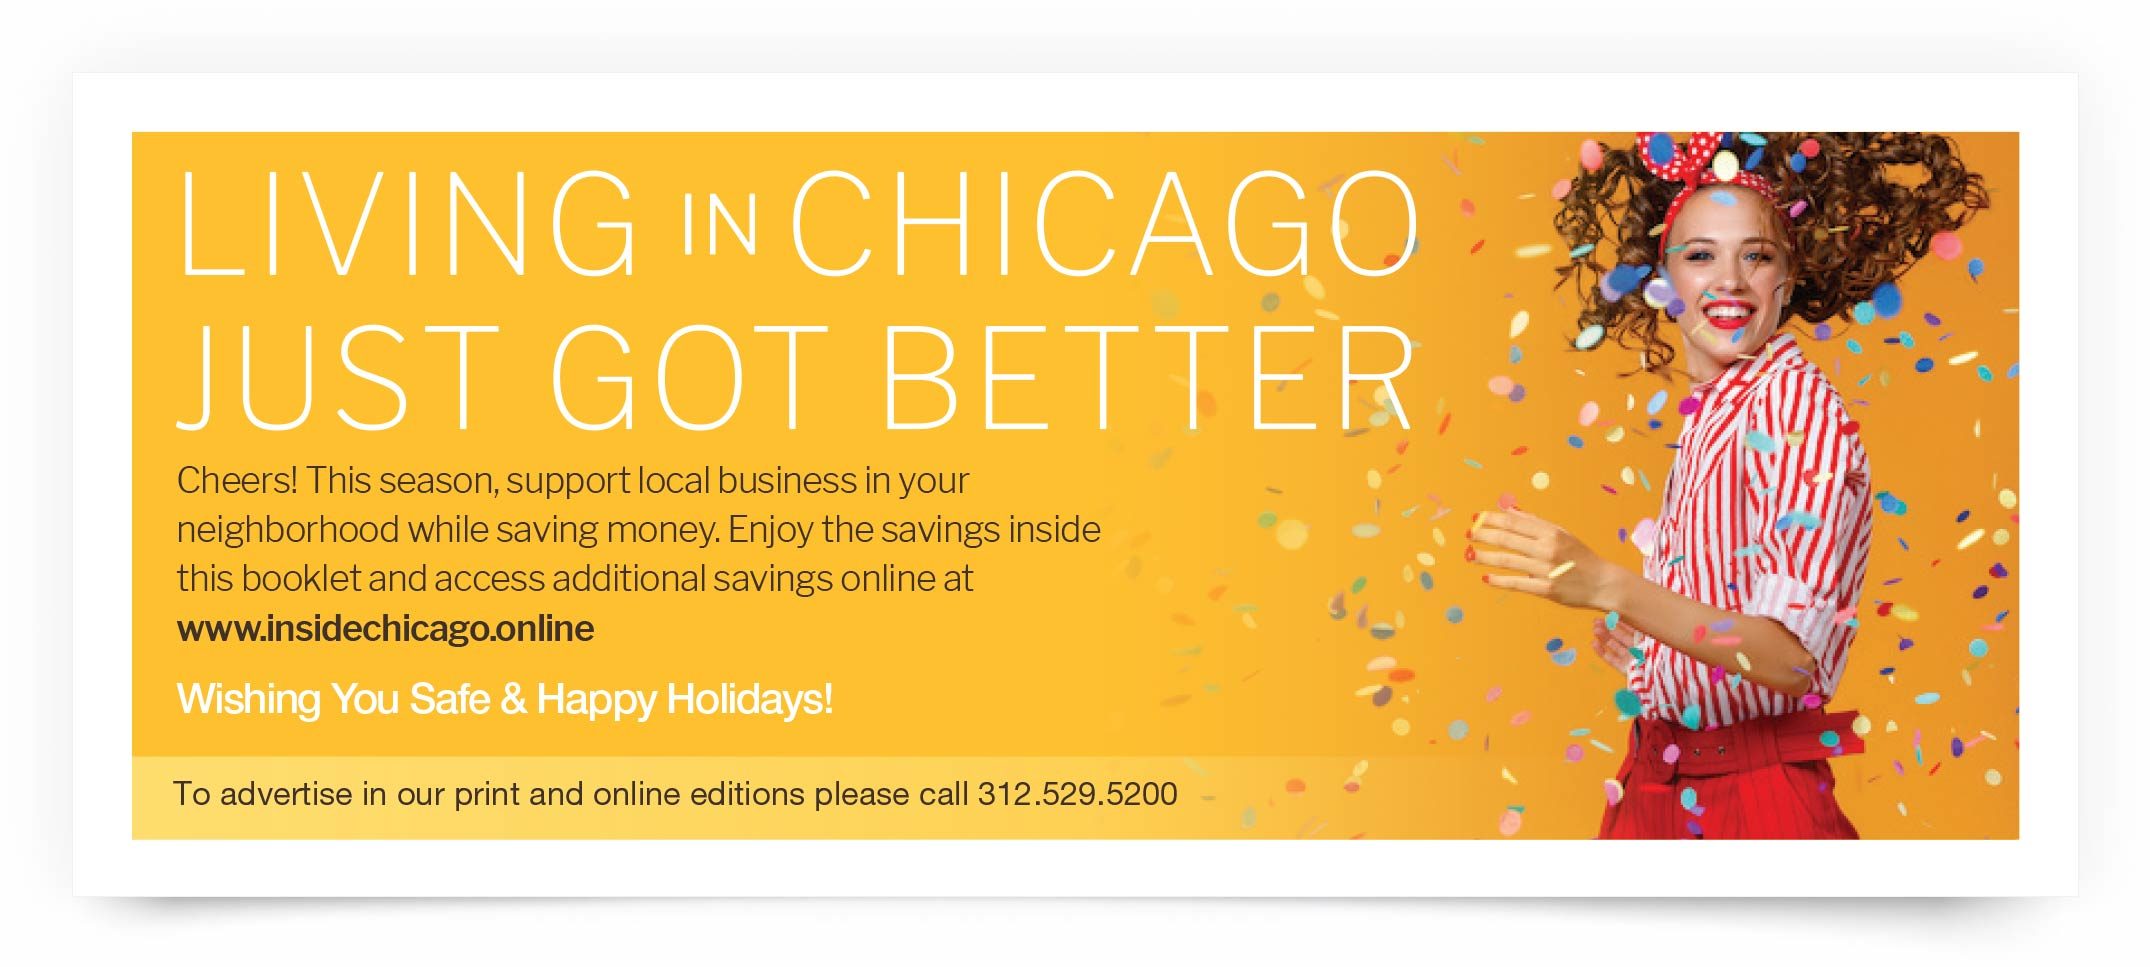 This season, support local business in your neighborhood while saving money. Enjoy the savings inside this booklet and access additional savi